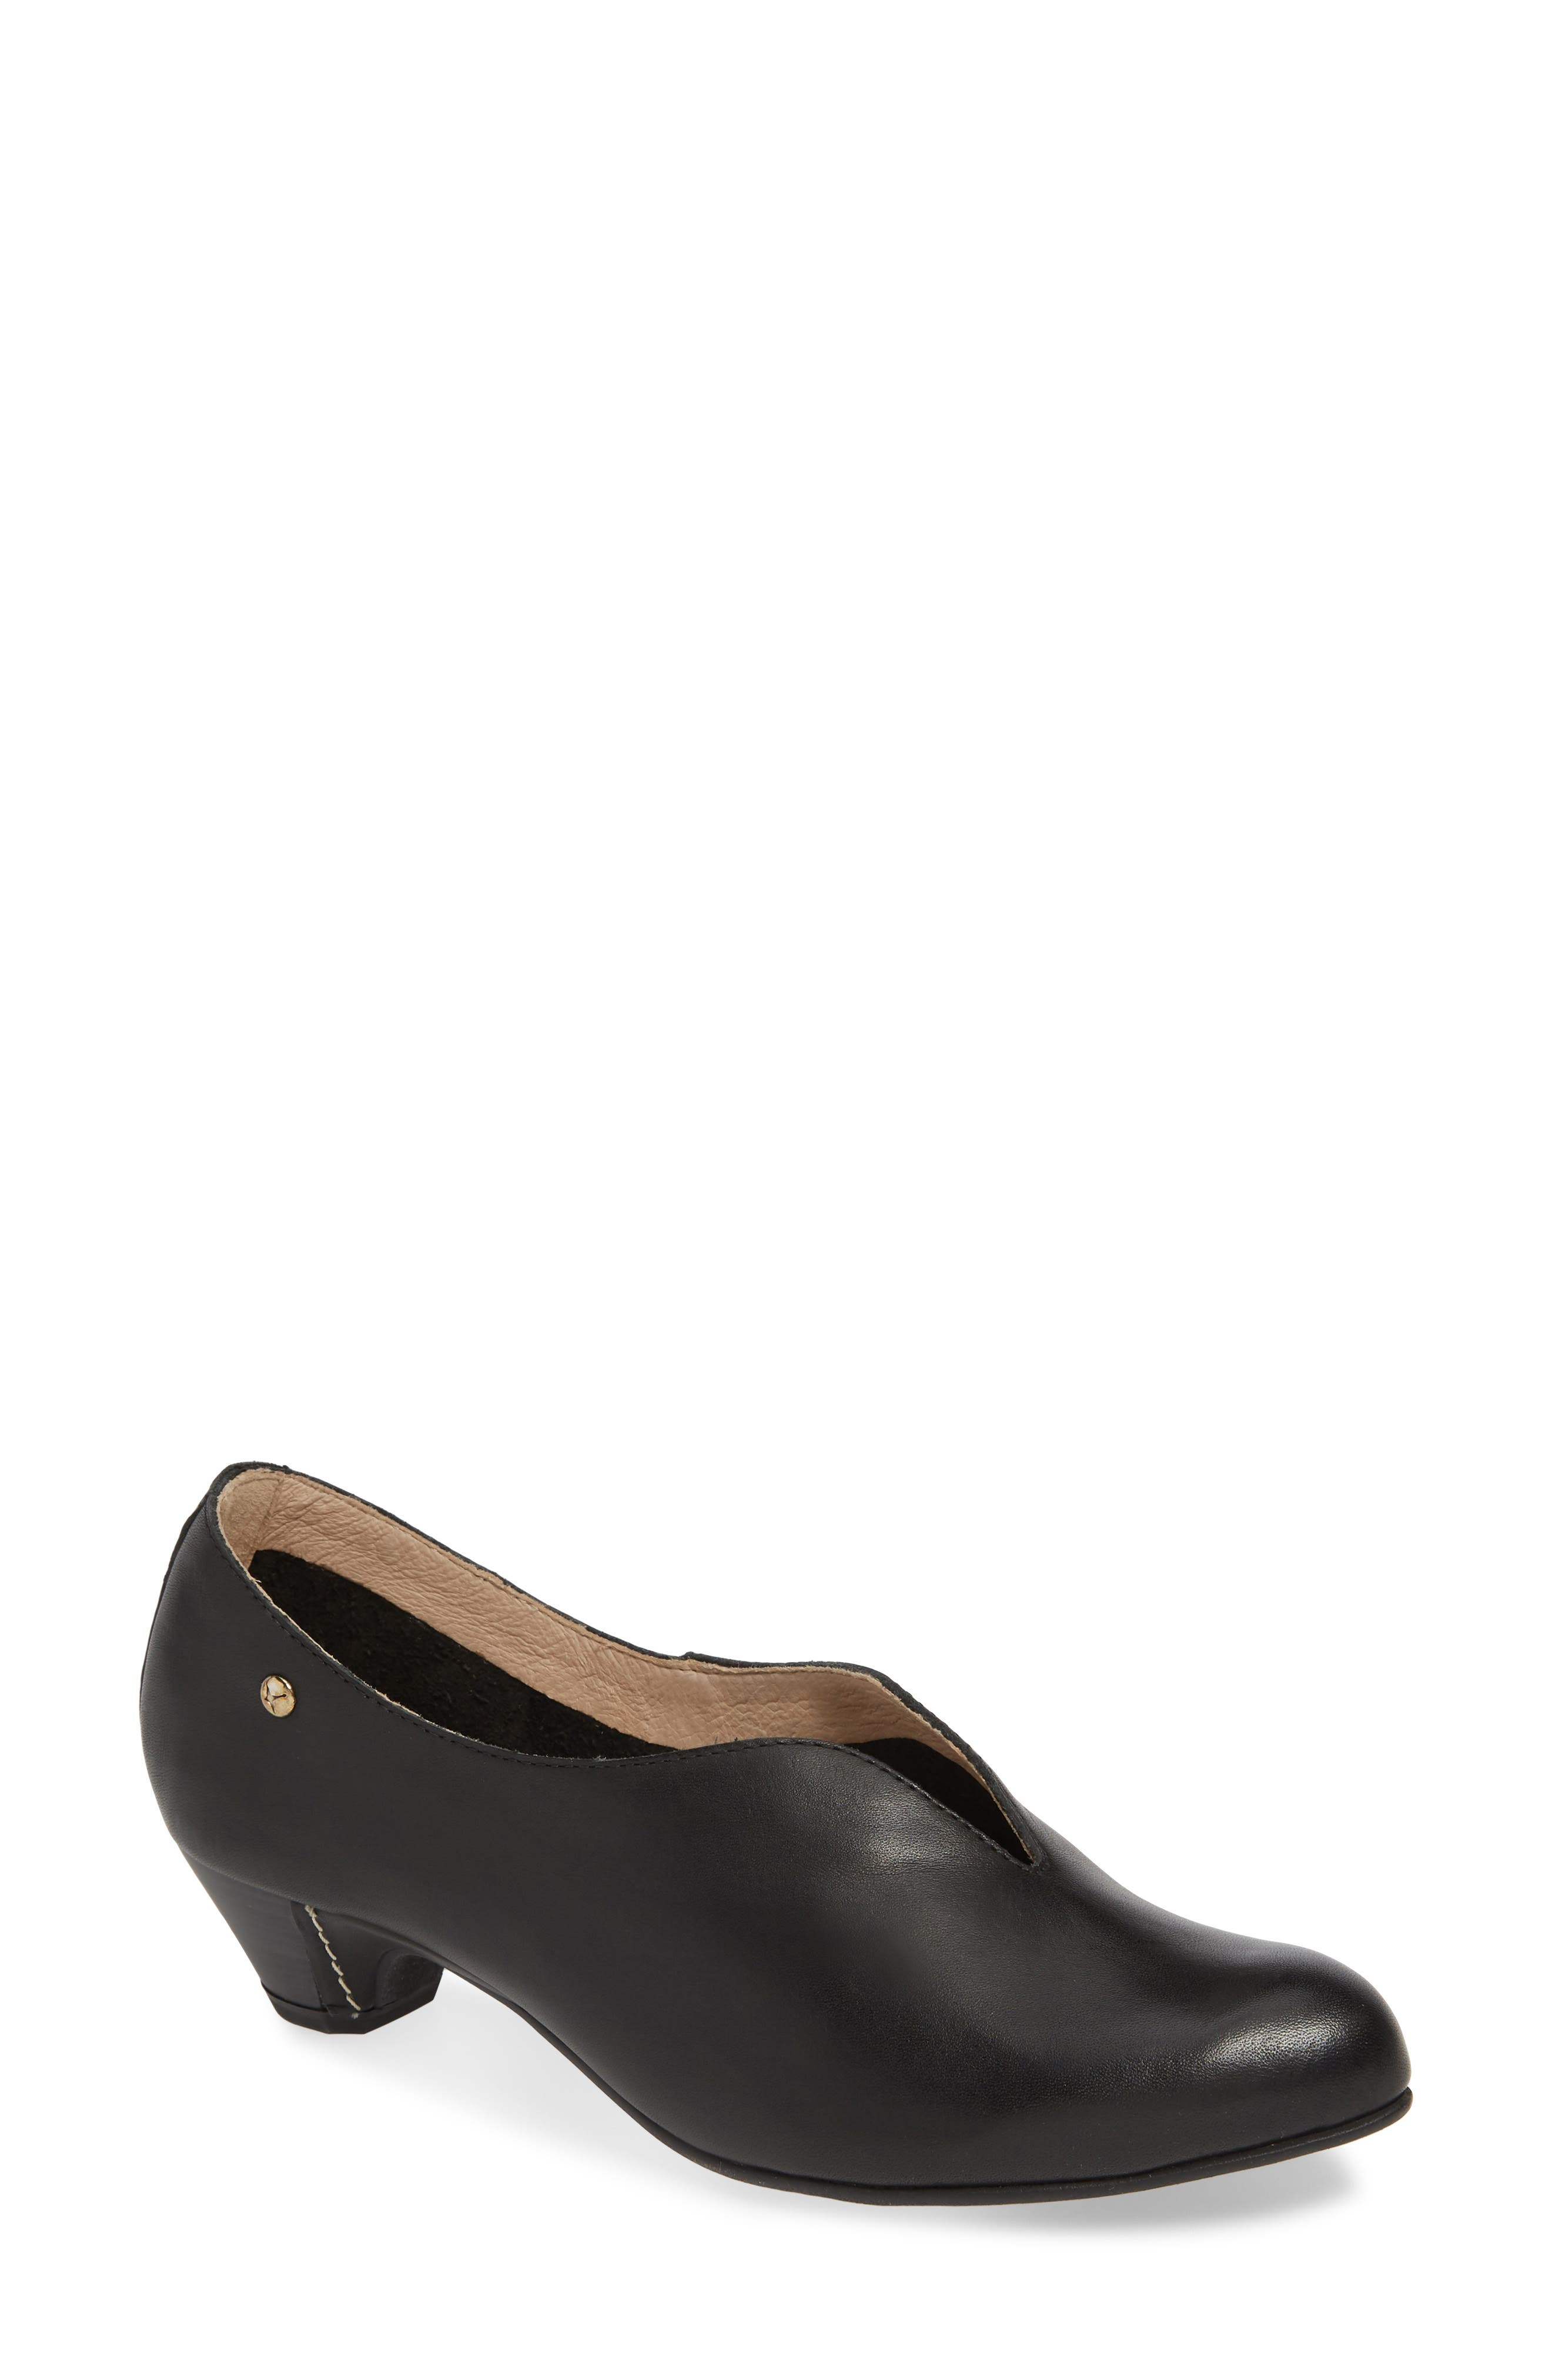 Pikolinos Elba Notched Pump, Black